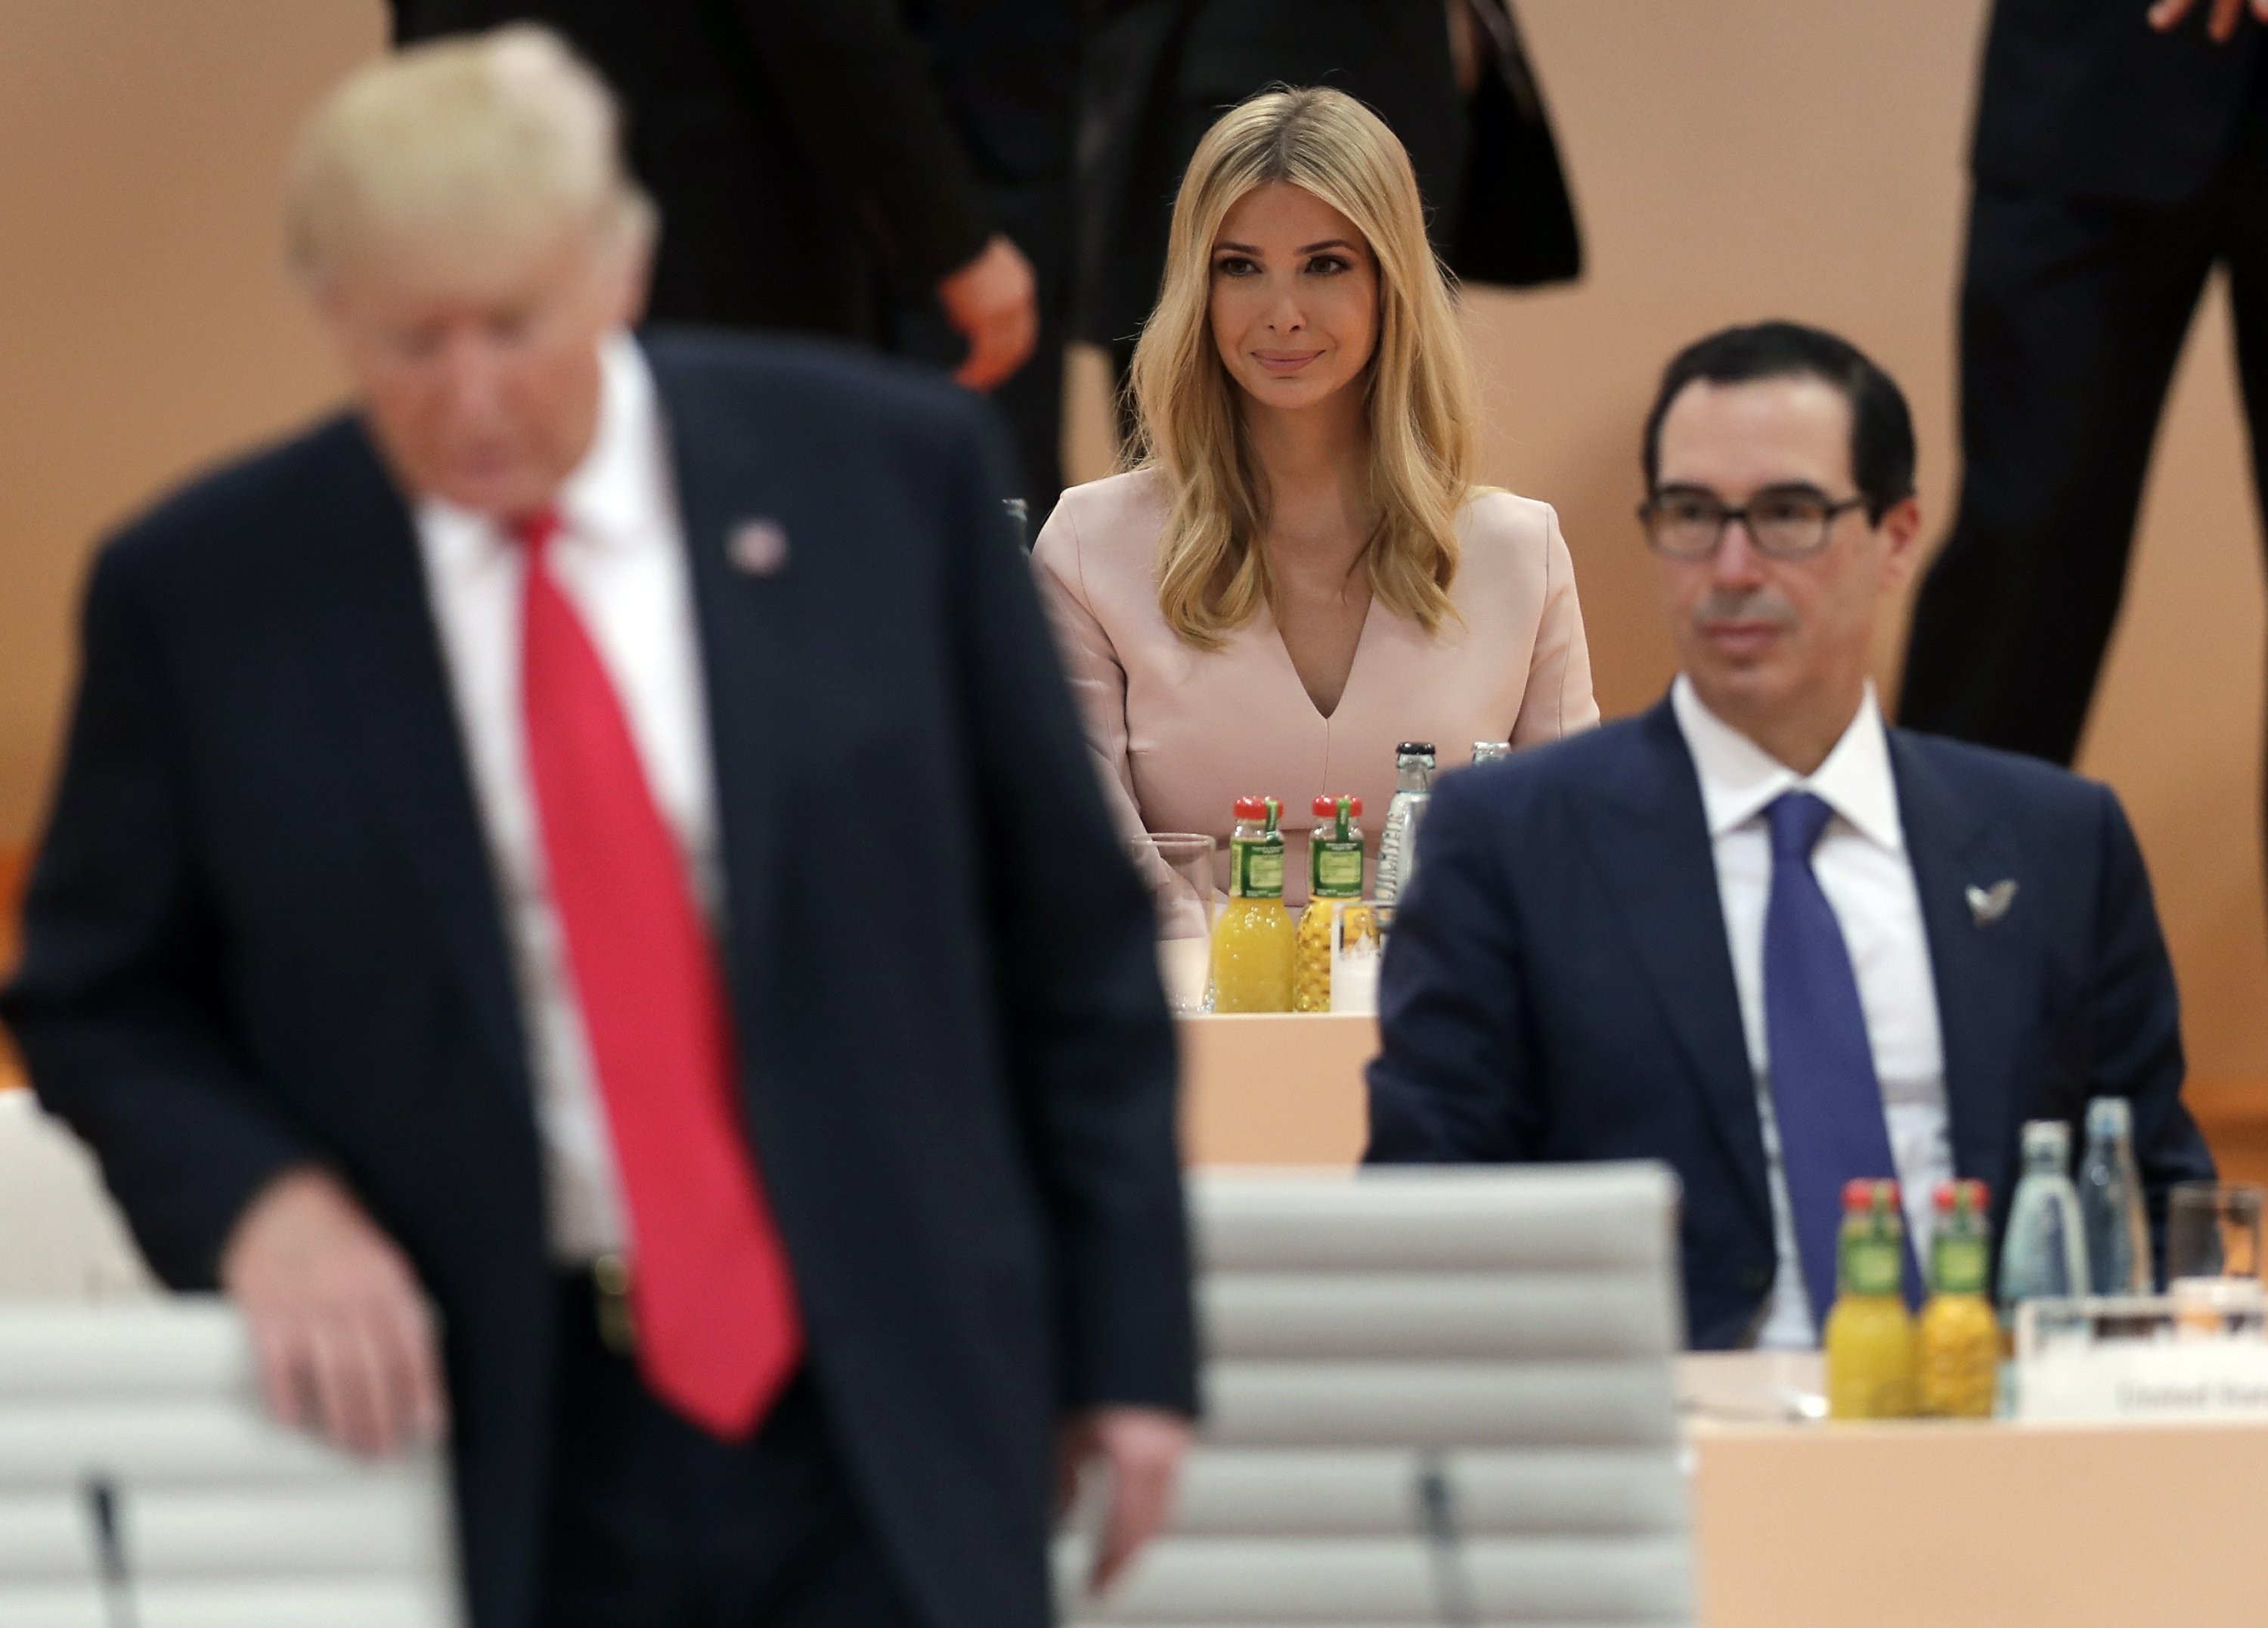 Trump administration letting Africa's crises drift: Experts